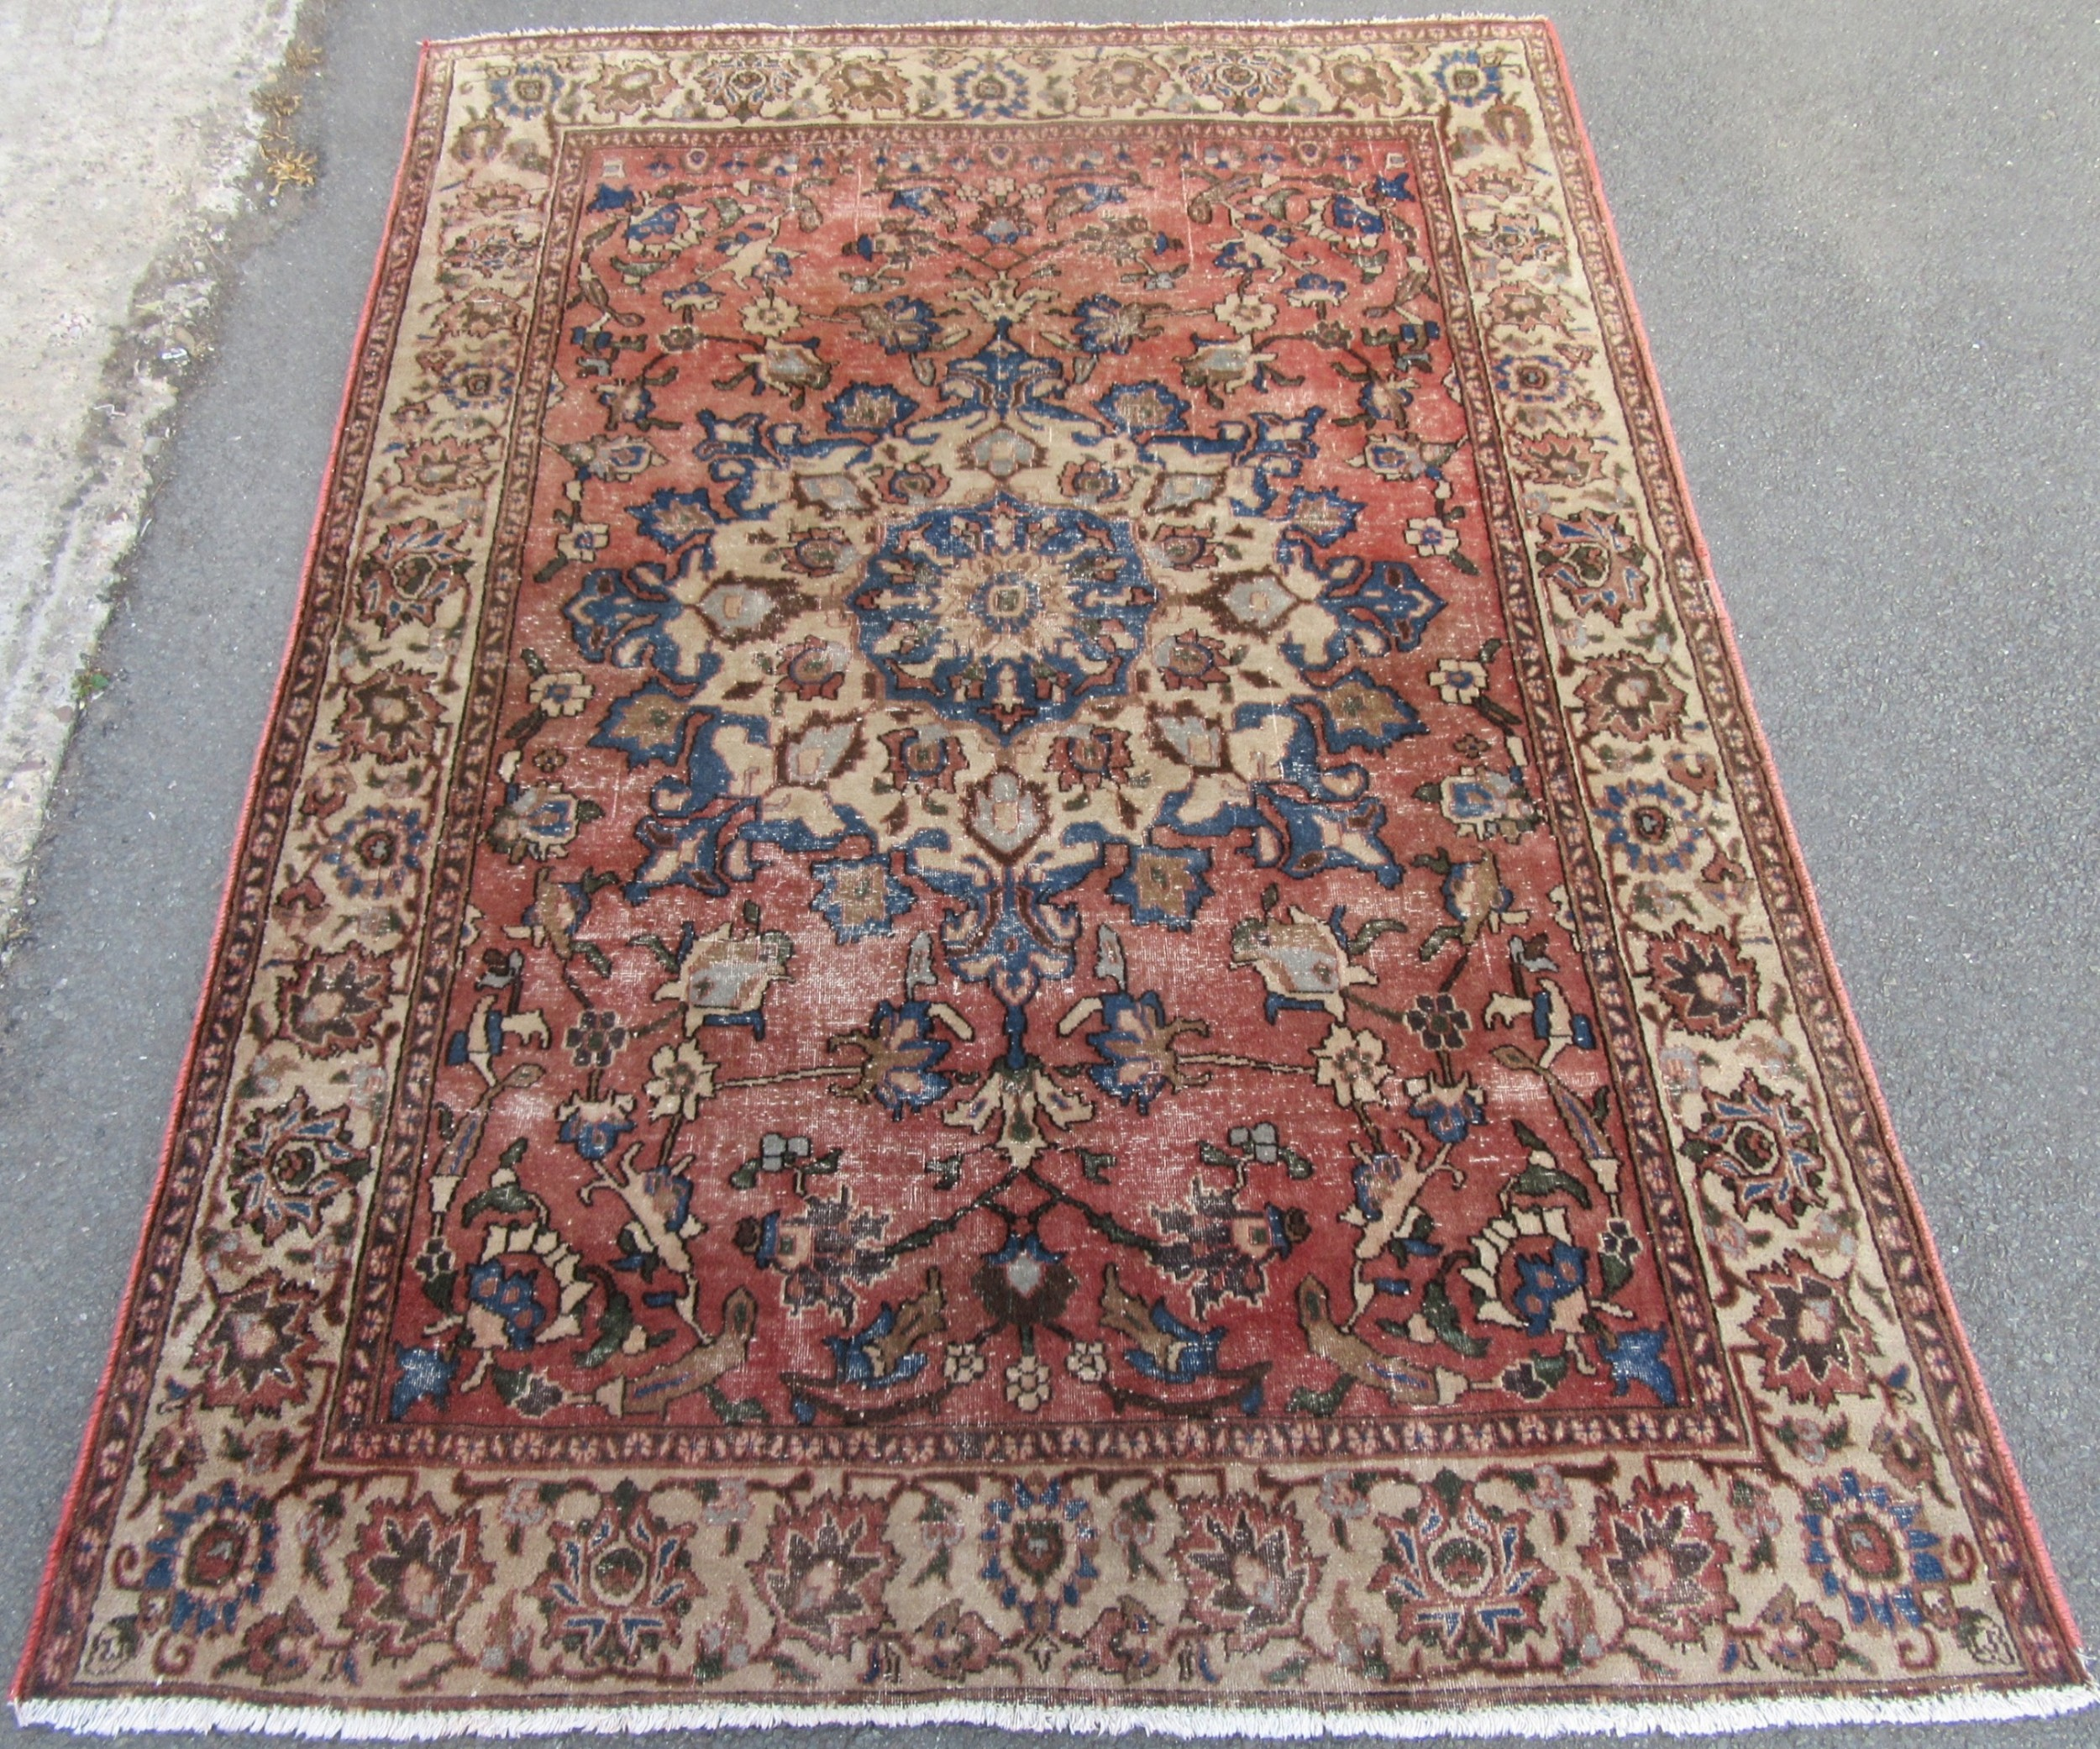 antique country house shabby chic north west persian tabriz village rug superb country house look design